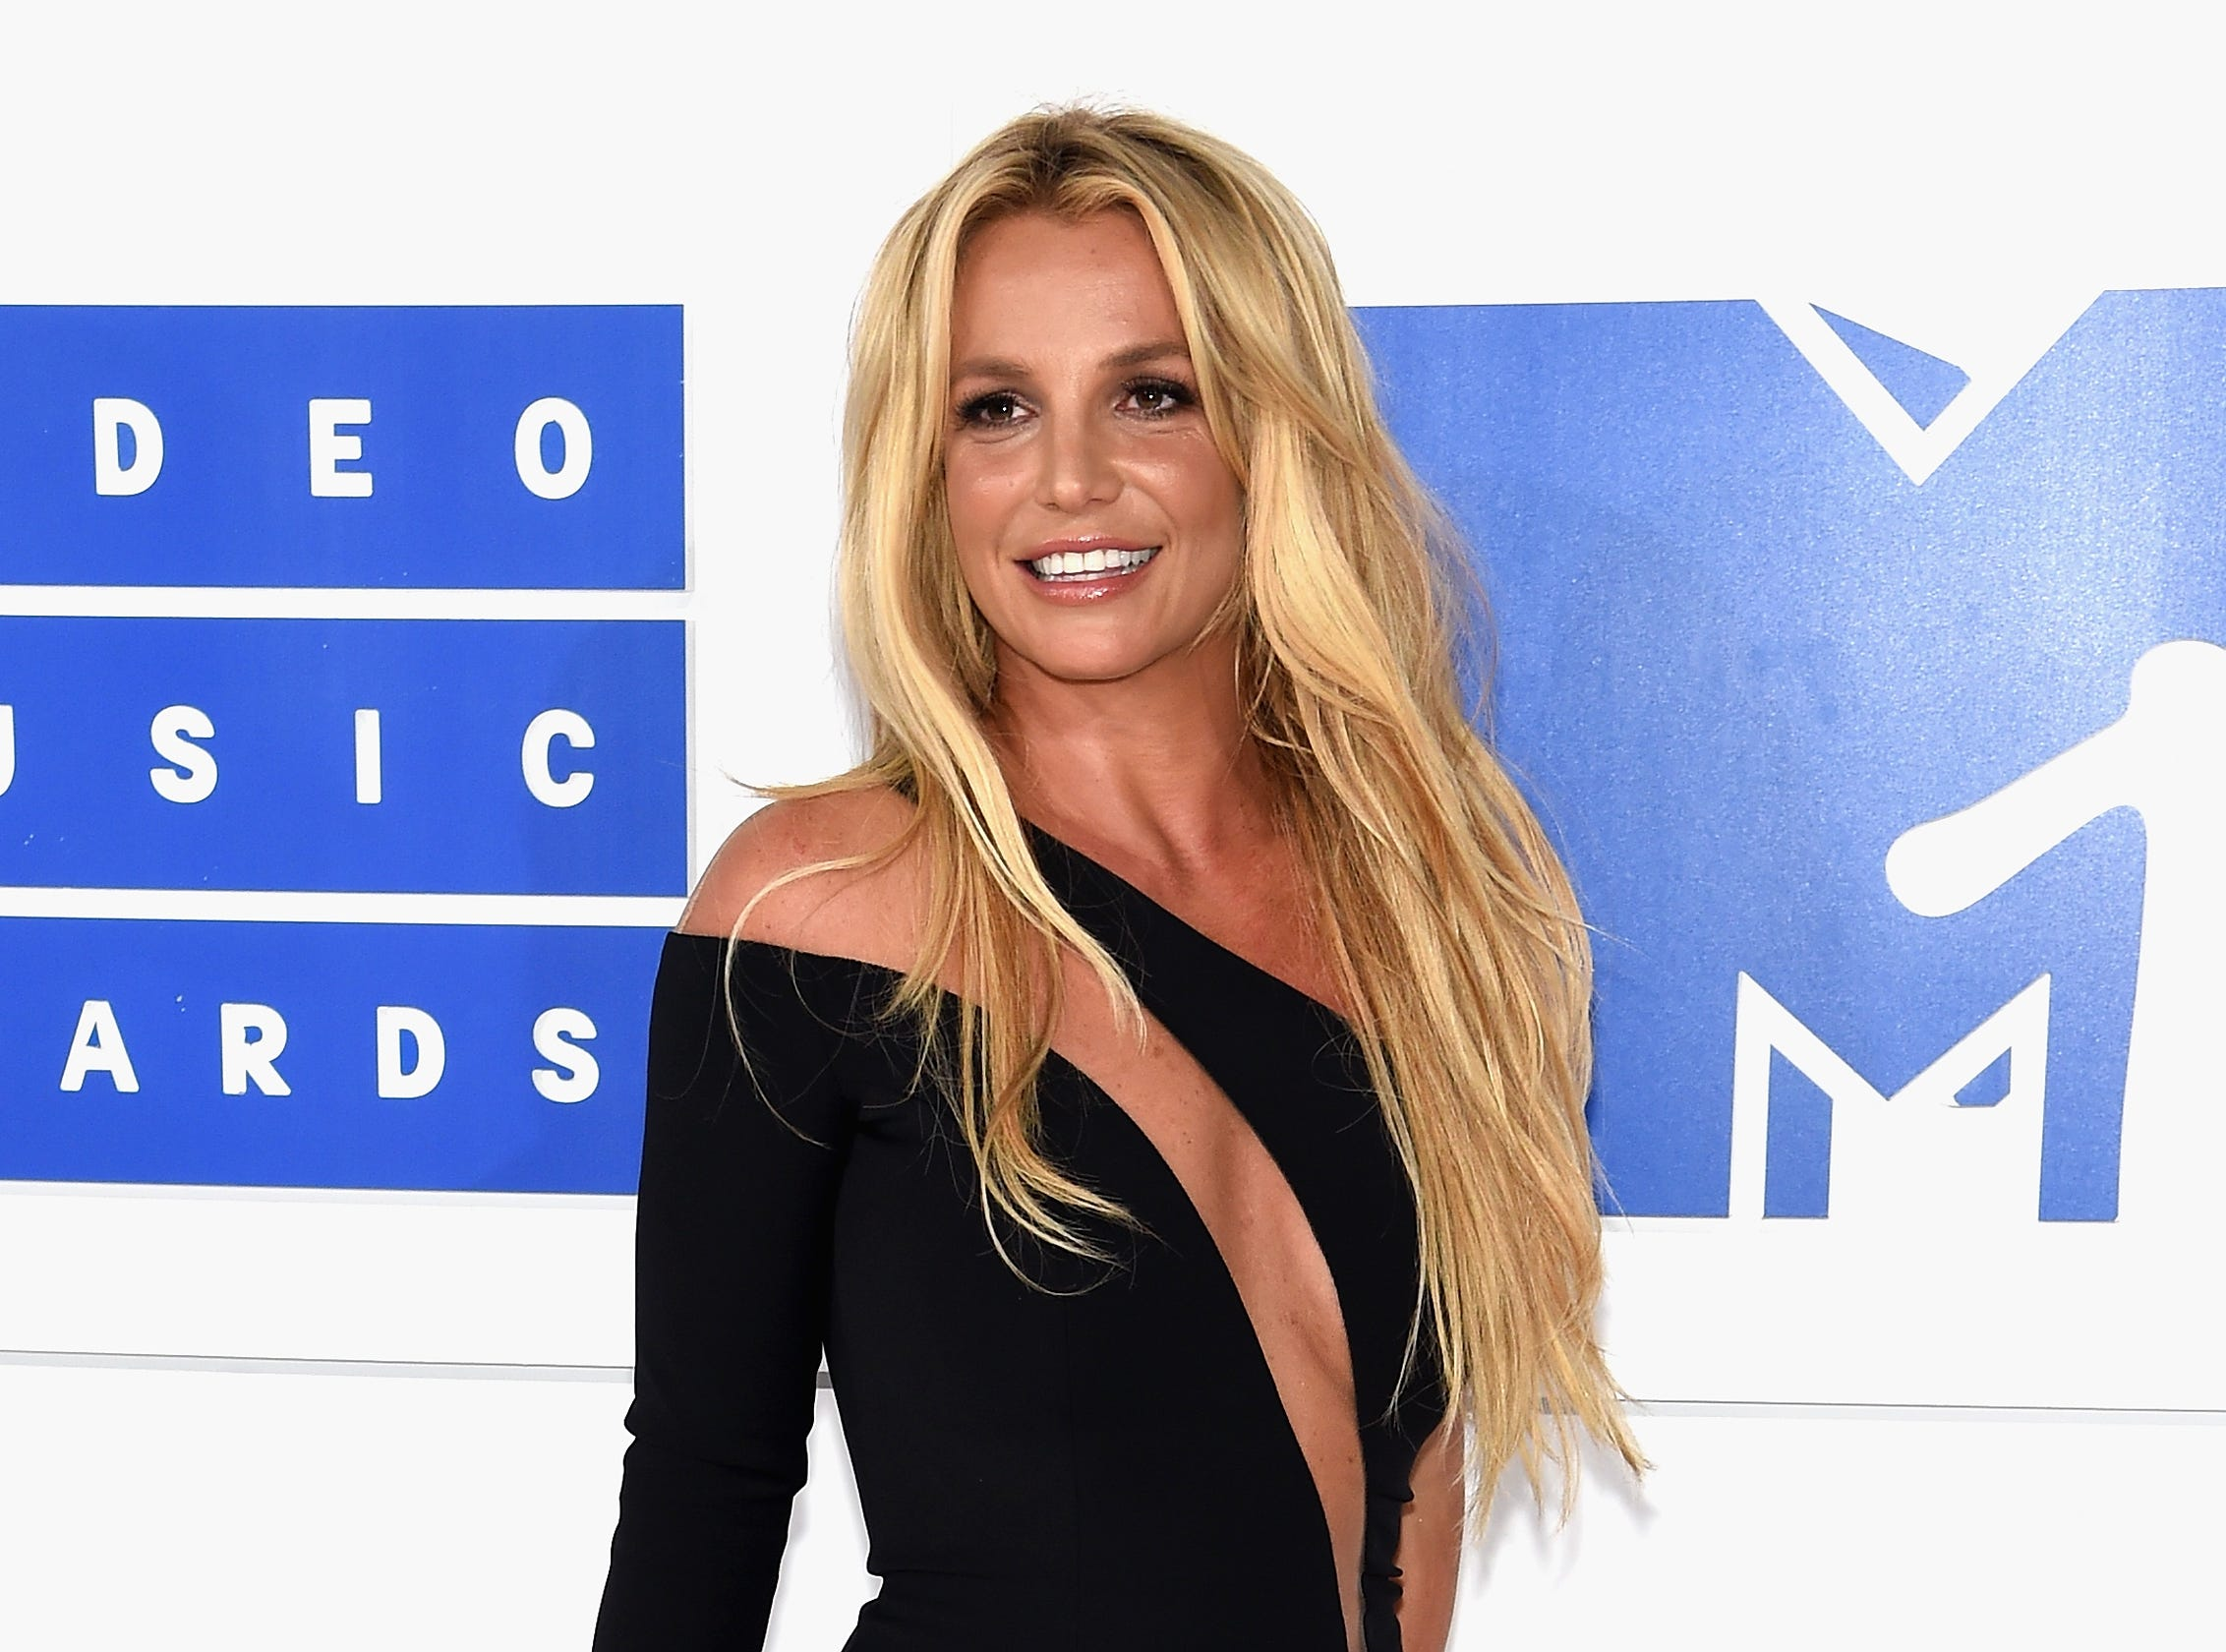 NEW YORK, NY - AUGUST 28:  Britney Spears attends the 2016 MTV Video Music Awards at Madison Square Garden on August 28, 2016 in New York City.  (Photo by Jamie McCarthy/Getty Images) ORG XMIT: 659513129 [Via MerlinFTP Drop]